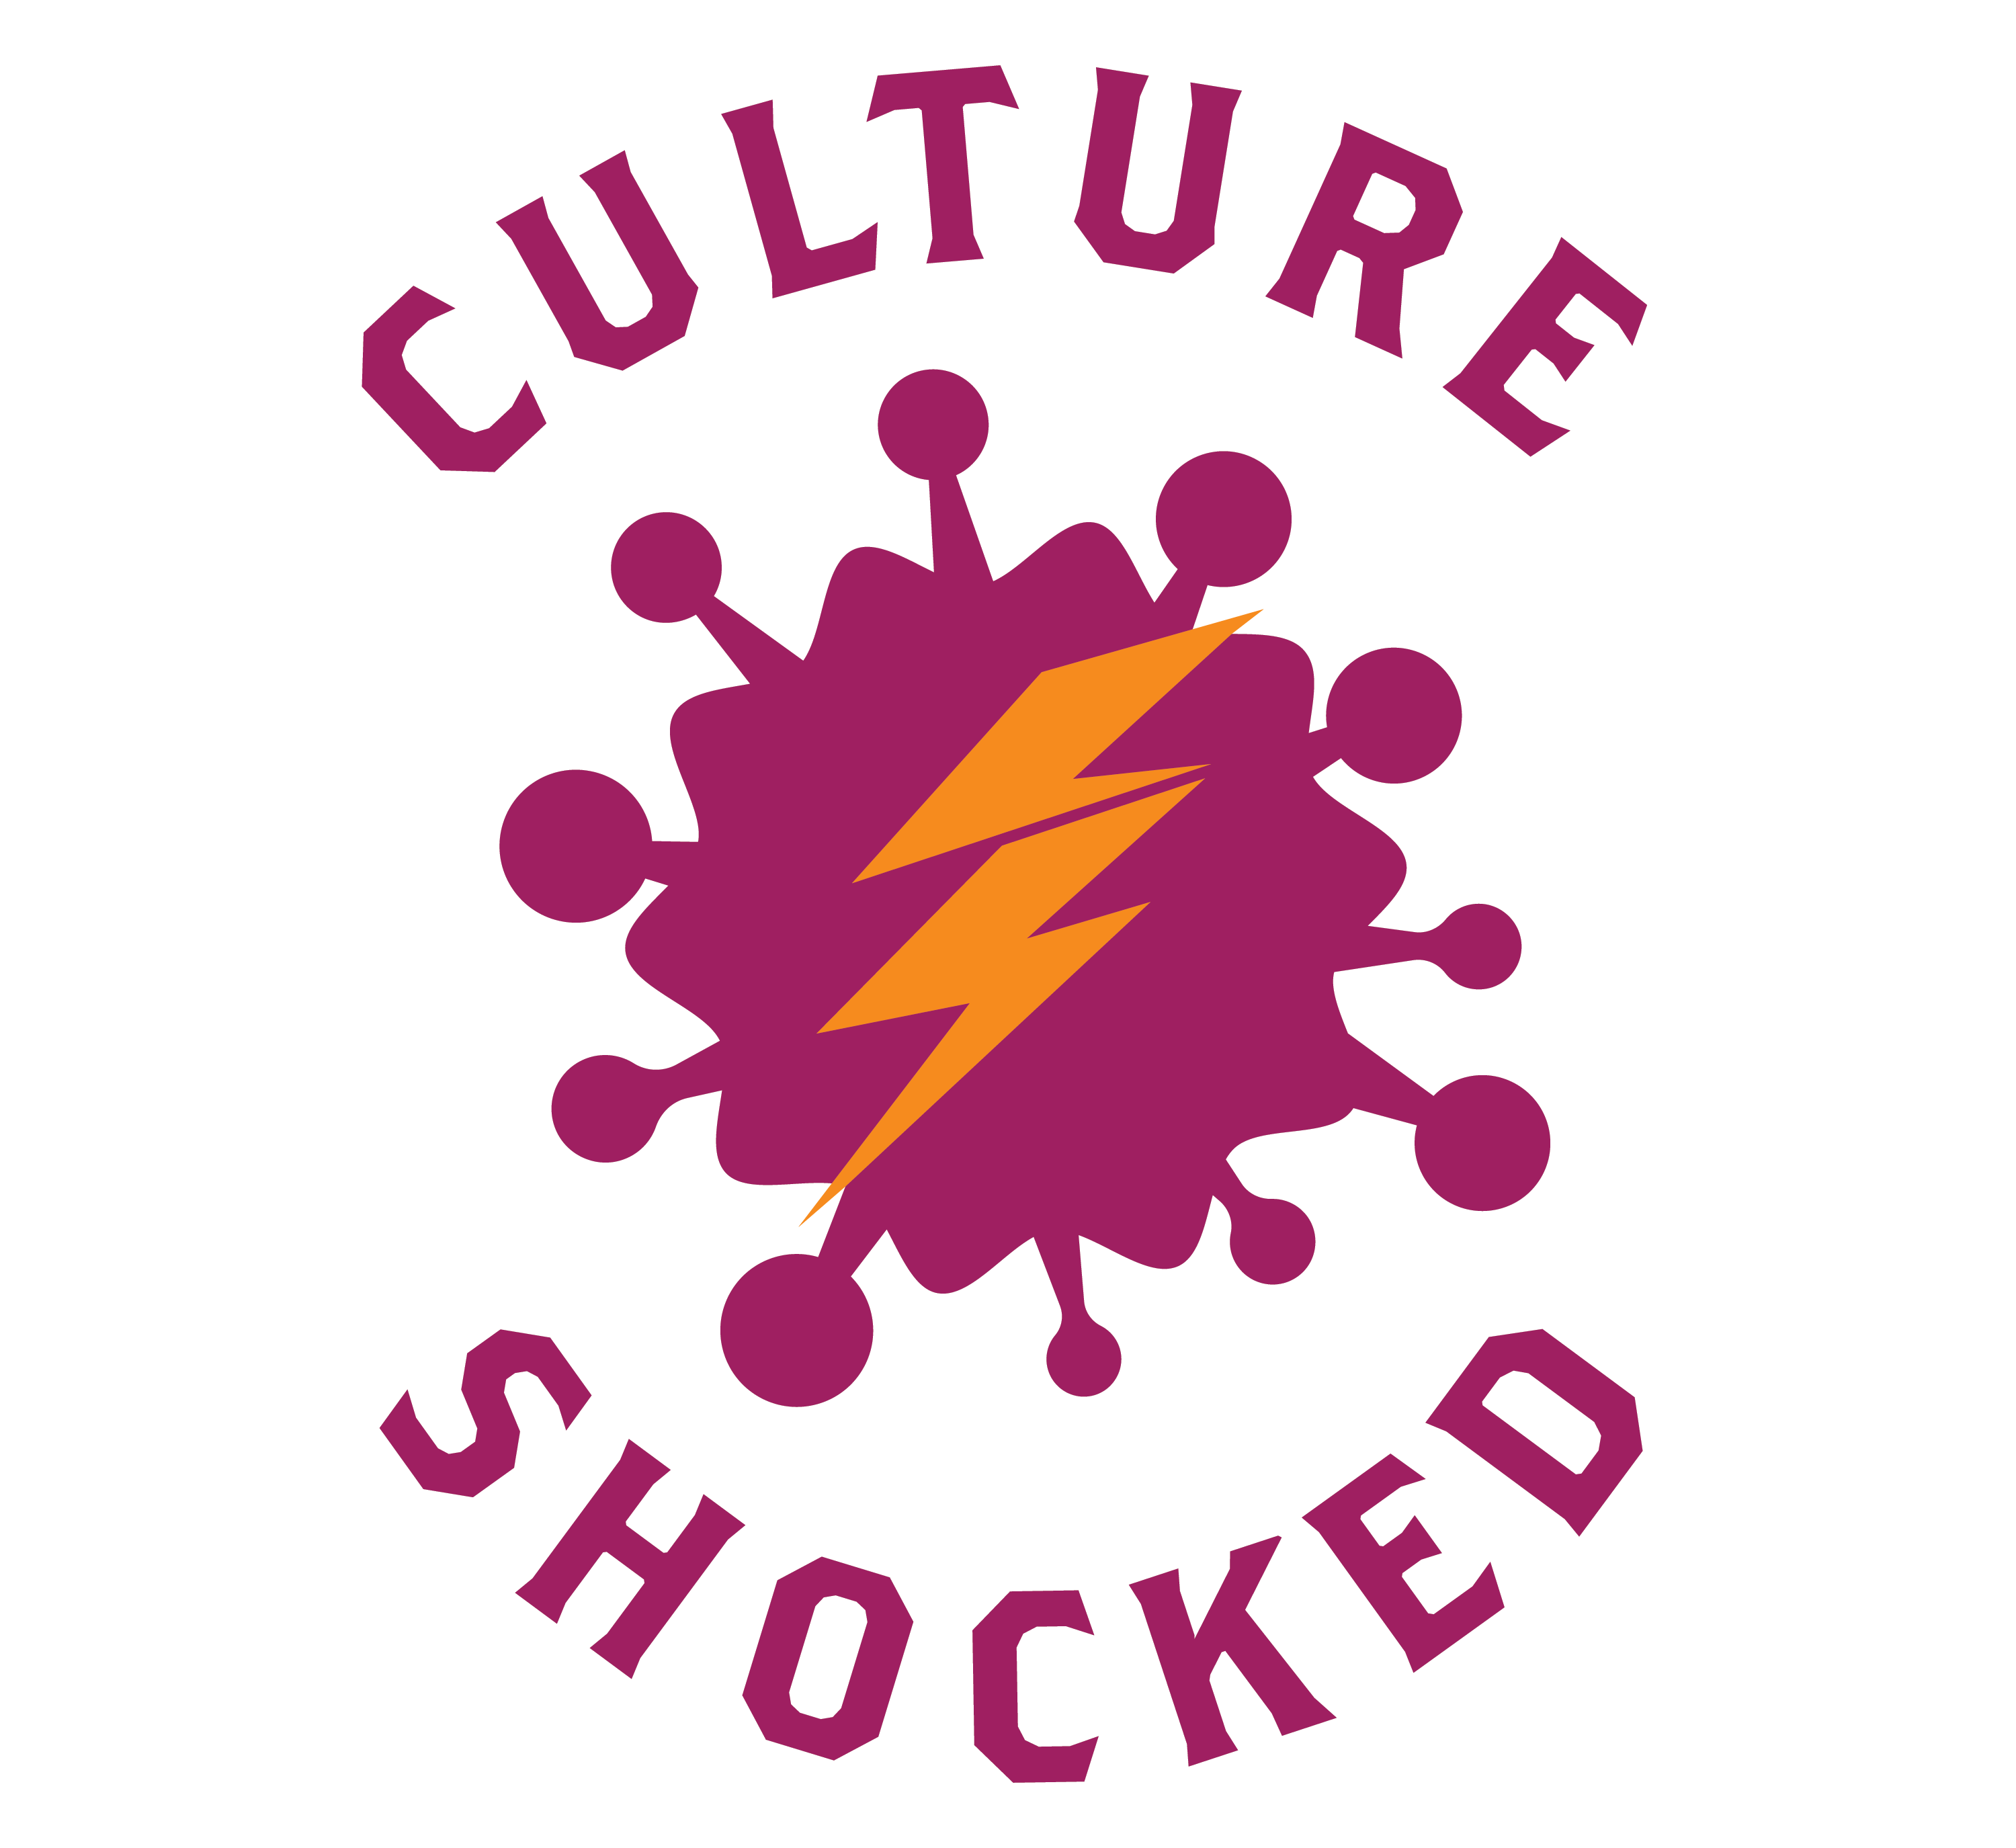 Culture Shocked